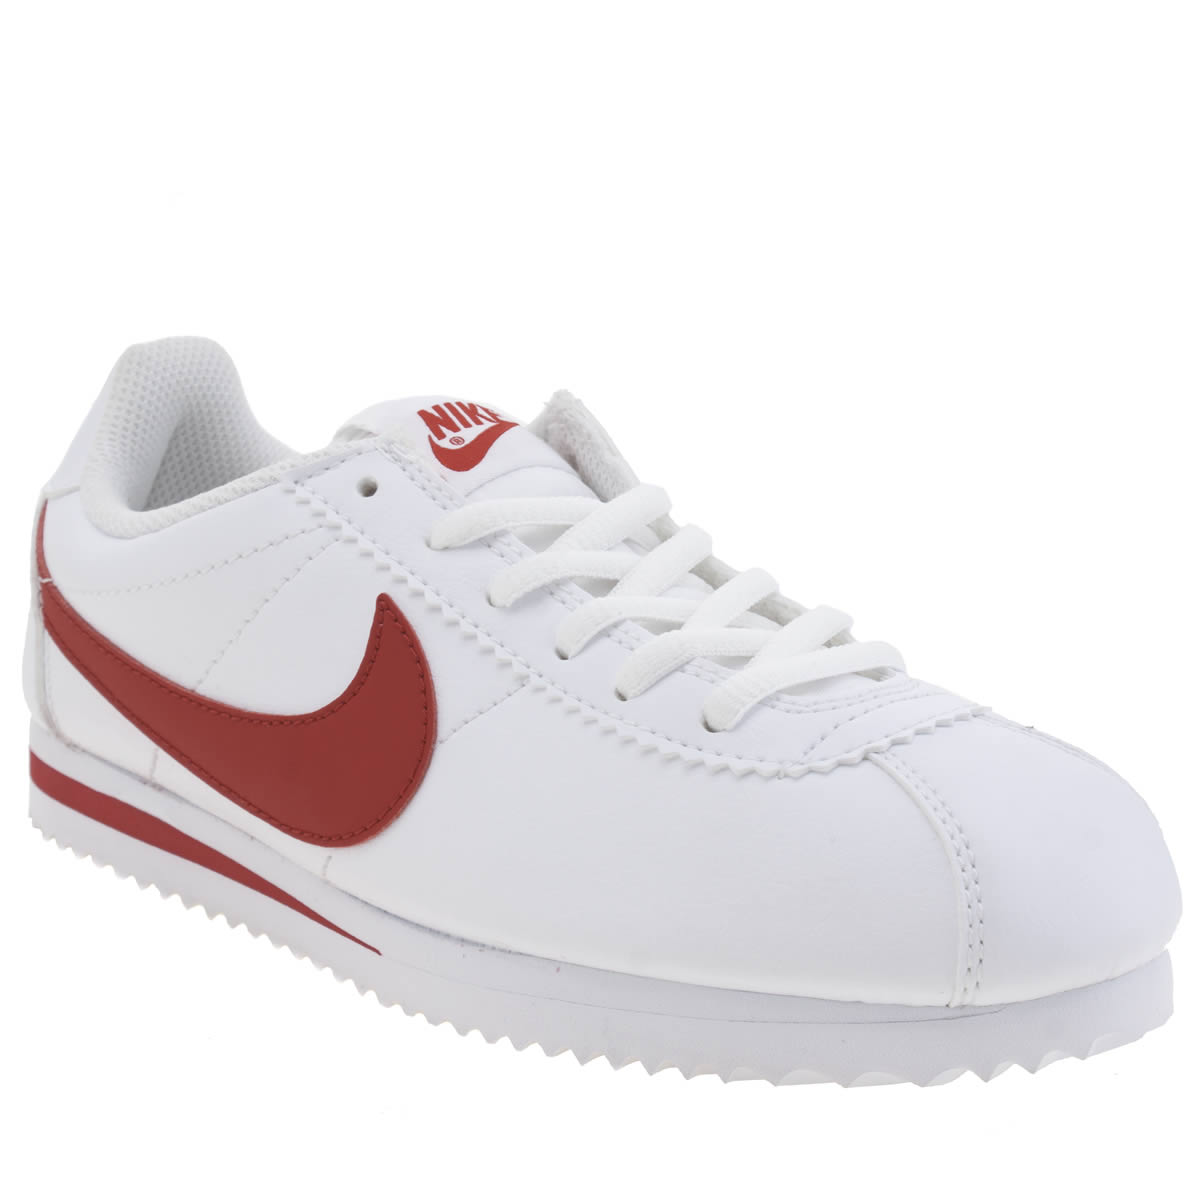 Blue Nike Cortez For Toddlers